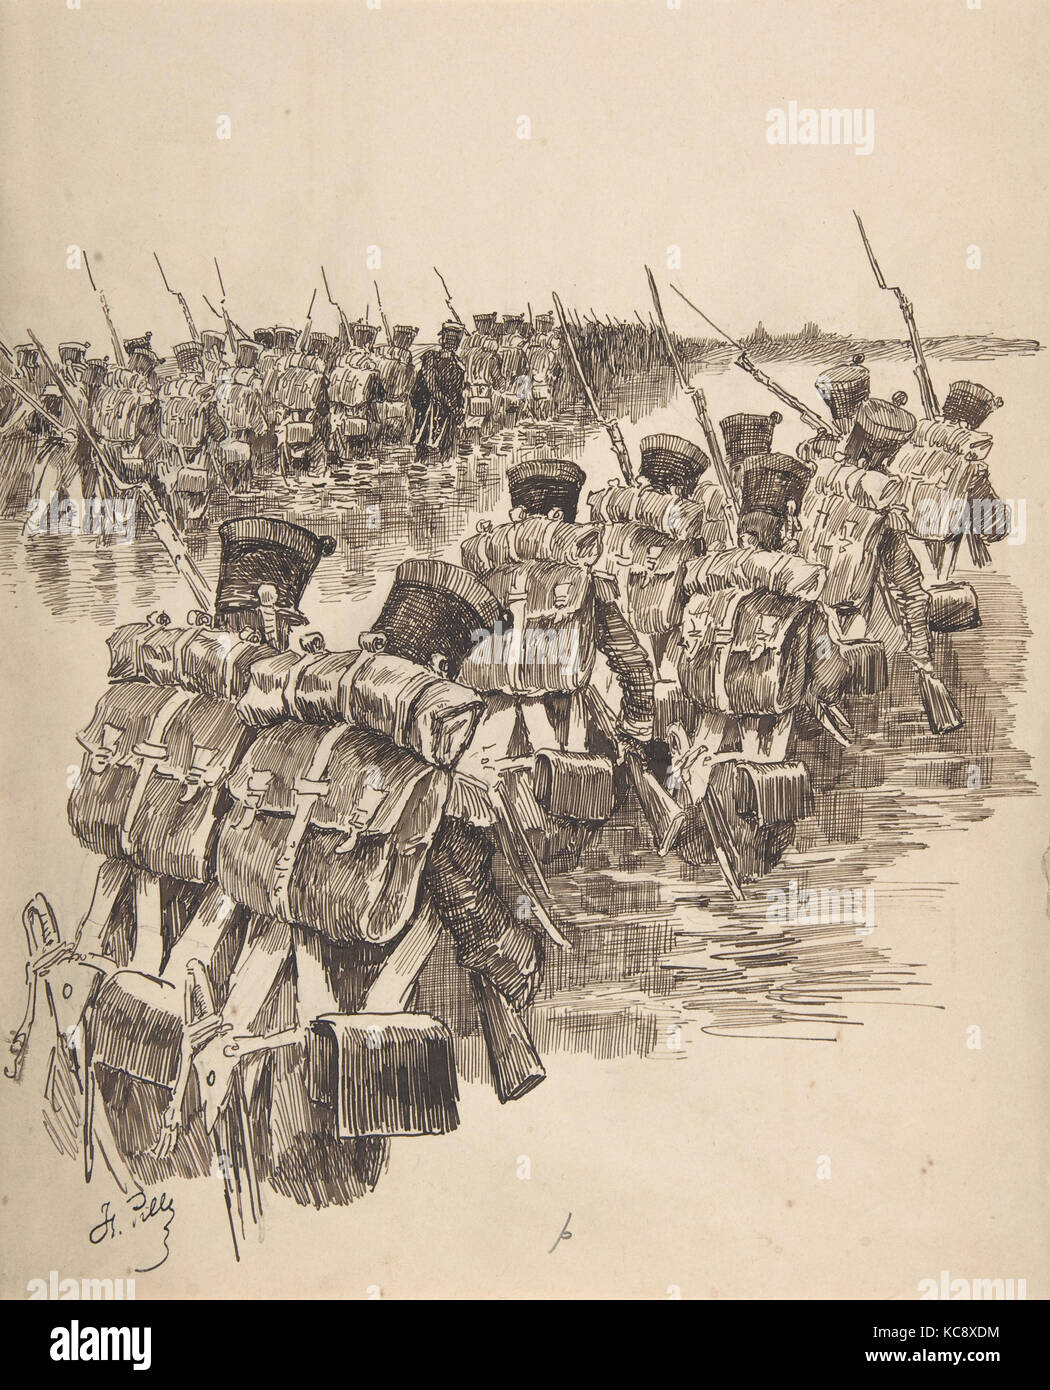 Soldiers Marching in Water, Charles-Henri Pille, 19th century - Stock Image